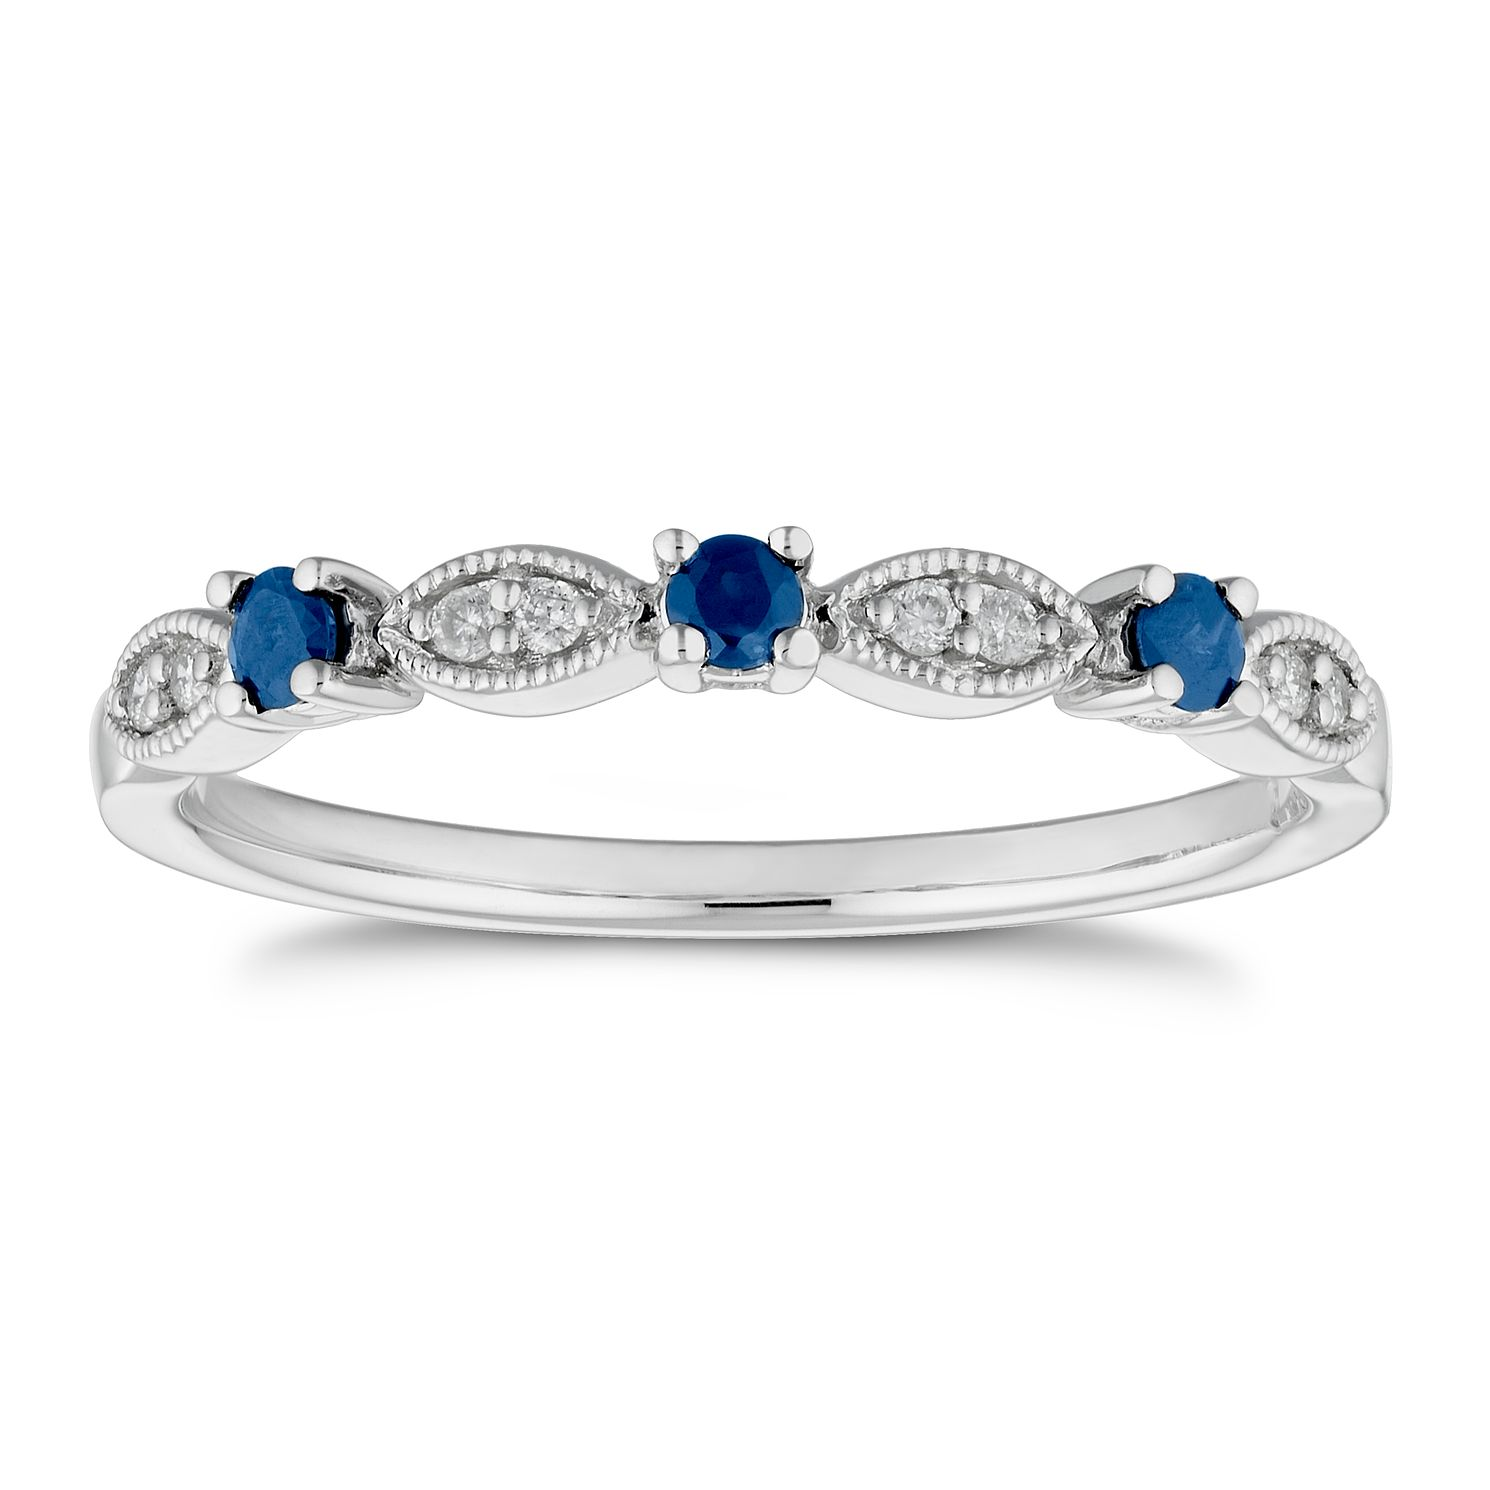 9ct White Gold Sapphire & Diamond Vintage Eternity Ring - Product number 4655982